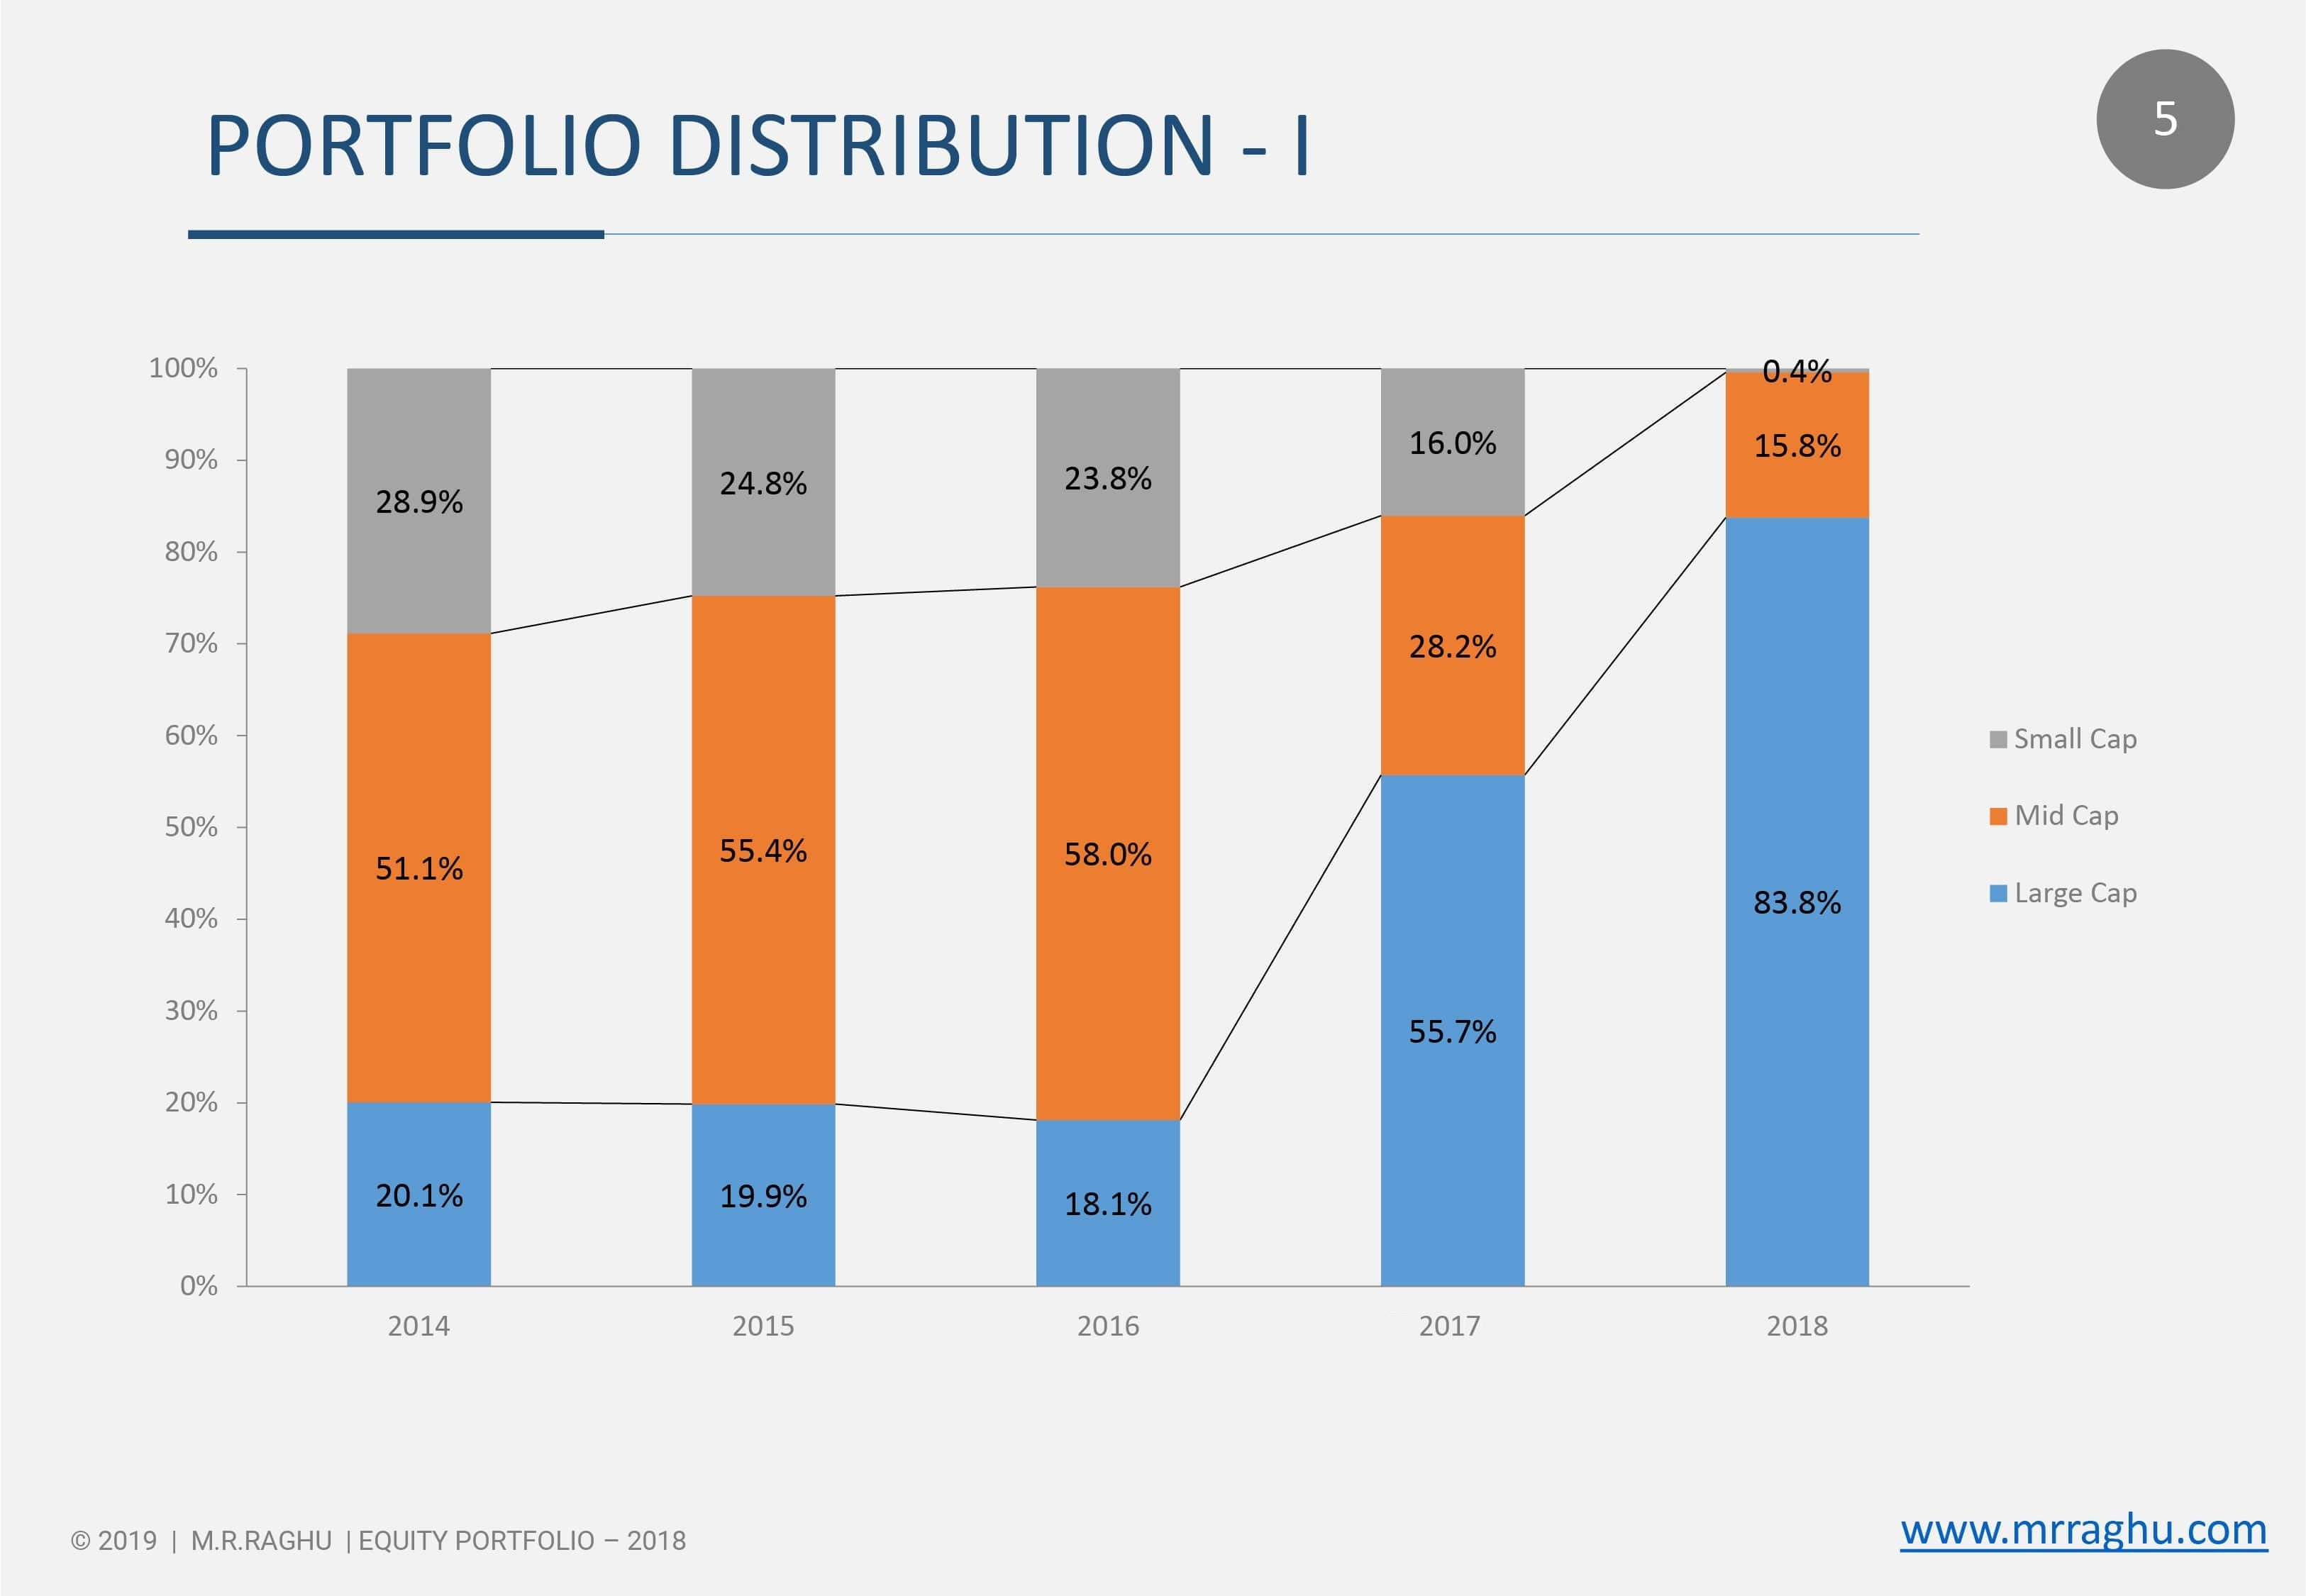 PORTFOLIO DISTRIBUTION - I - 2018